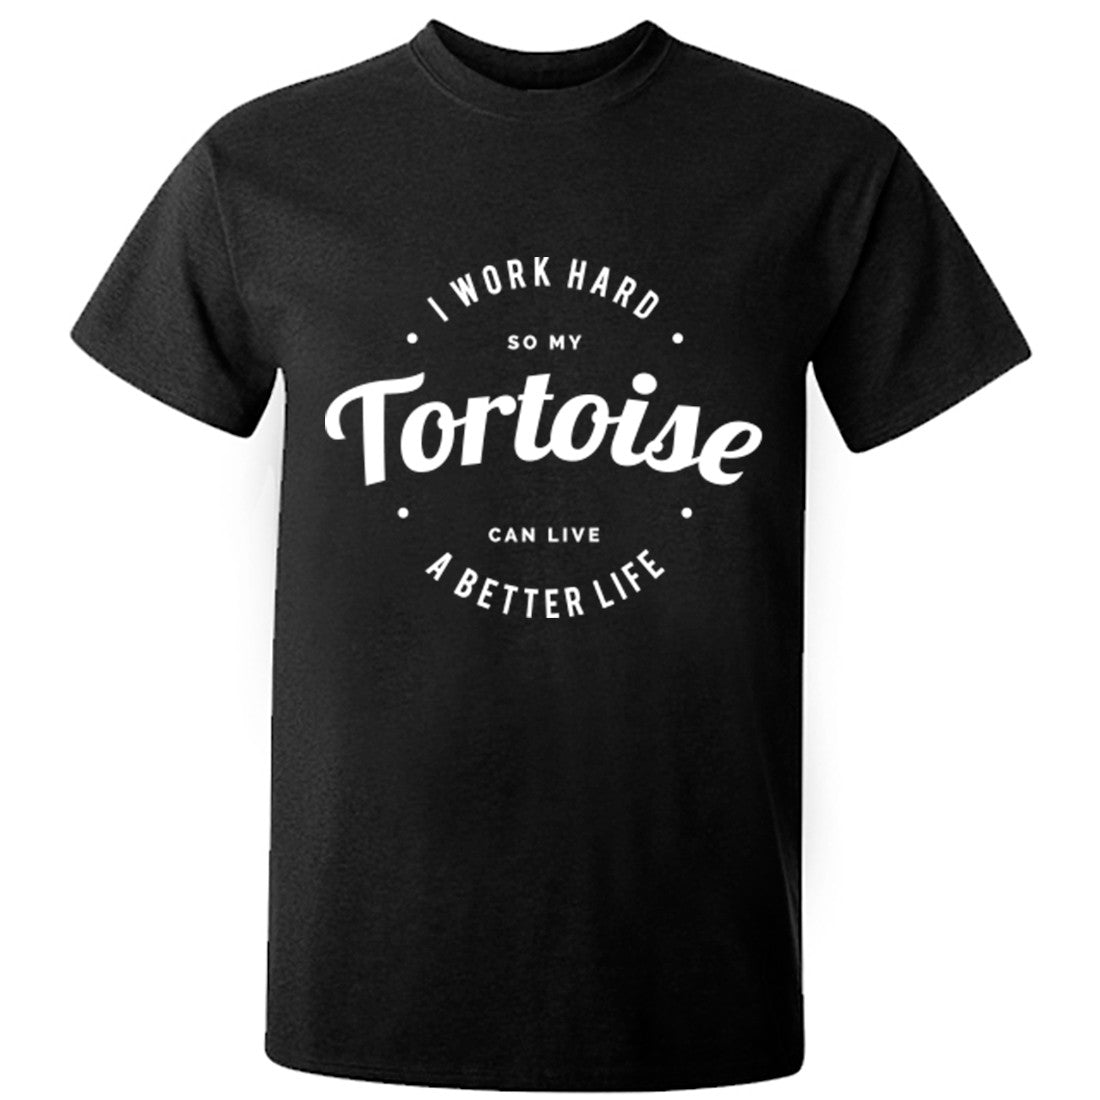 I Work Hard So My Tortoise Can Live A Better Life Unisex Fit T-Shirt K0437 - Illustrated Identity Ltd.